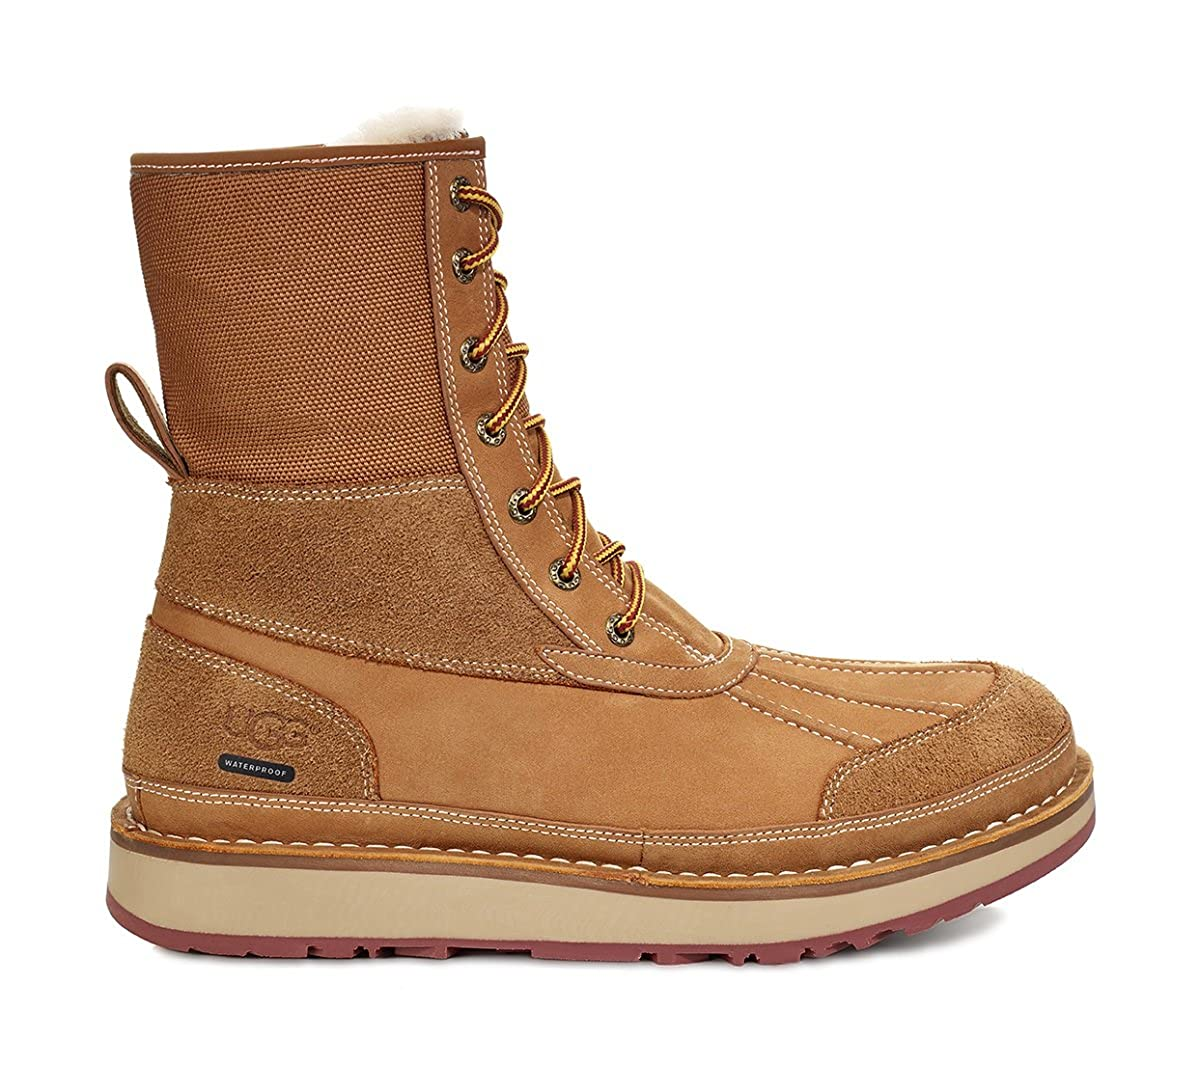 6198b92a9d5 Amazon.com | UGG Mens Avalanche Butte Boot | Boots